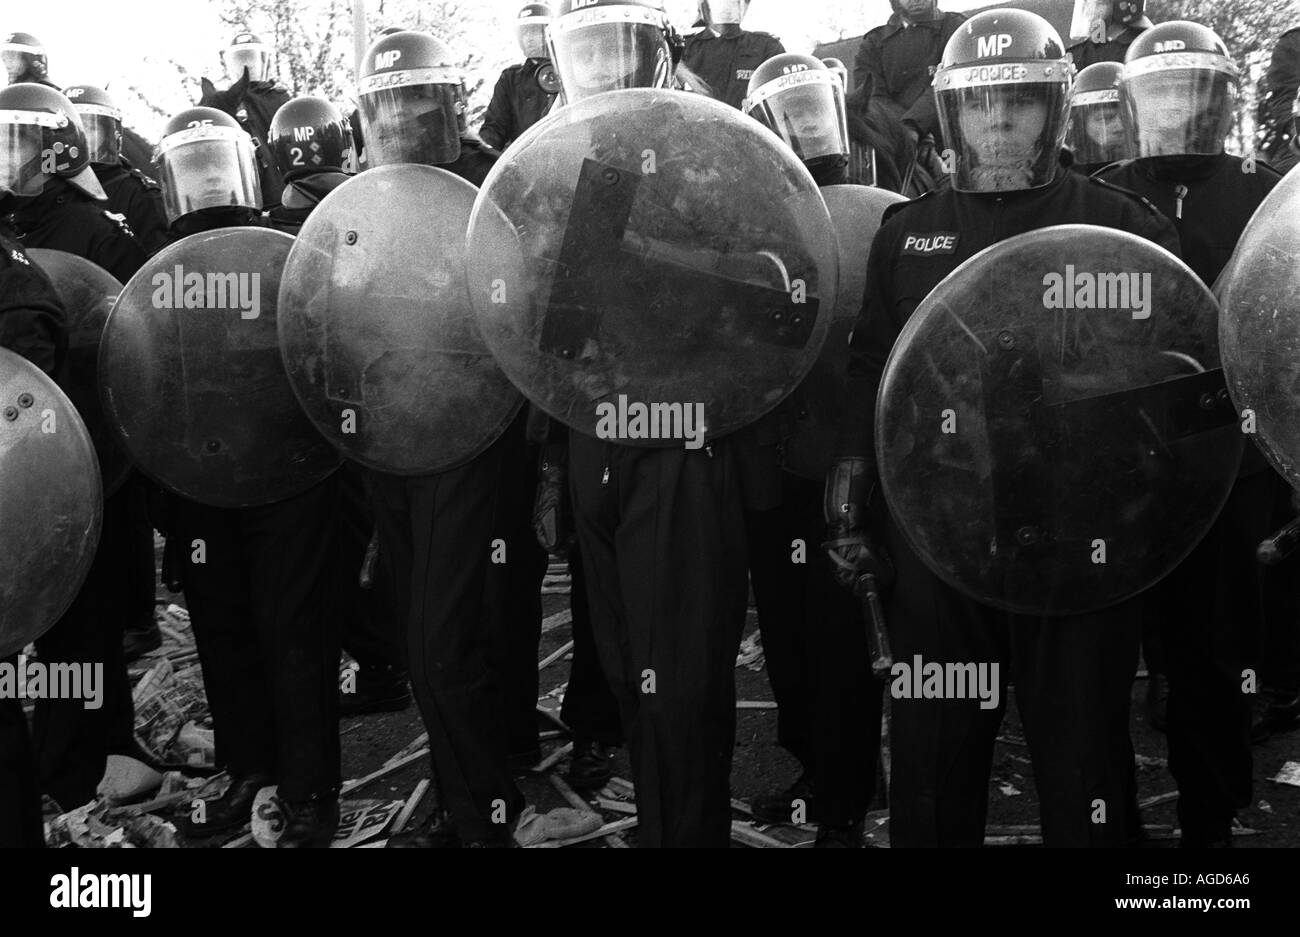 Riot police confront protestors at Welling, London, UK, who tried to march past the headquarters of the British National Party. - Stock Image